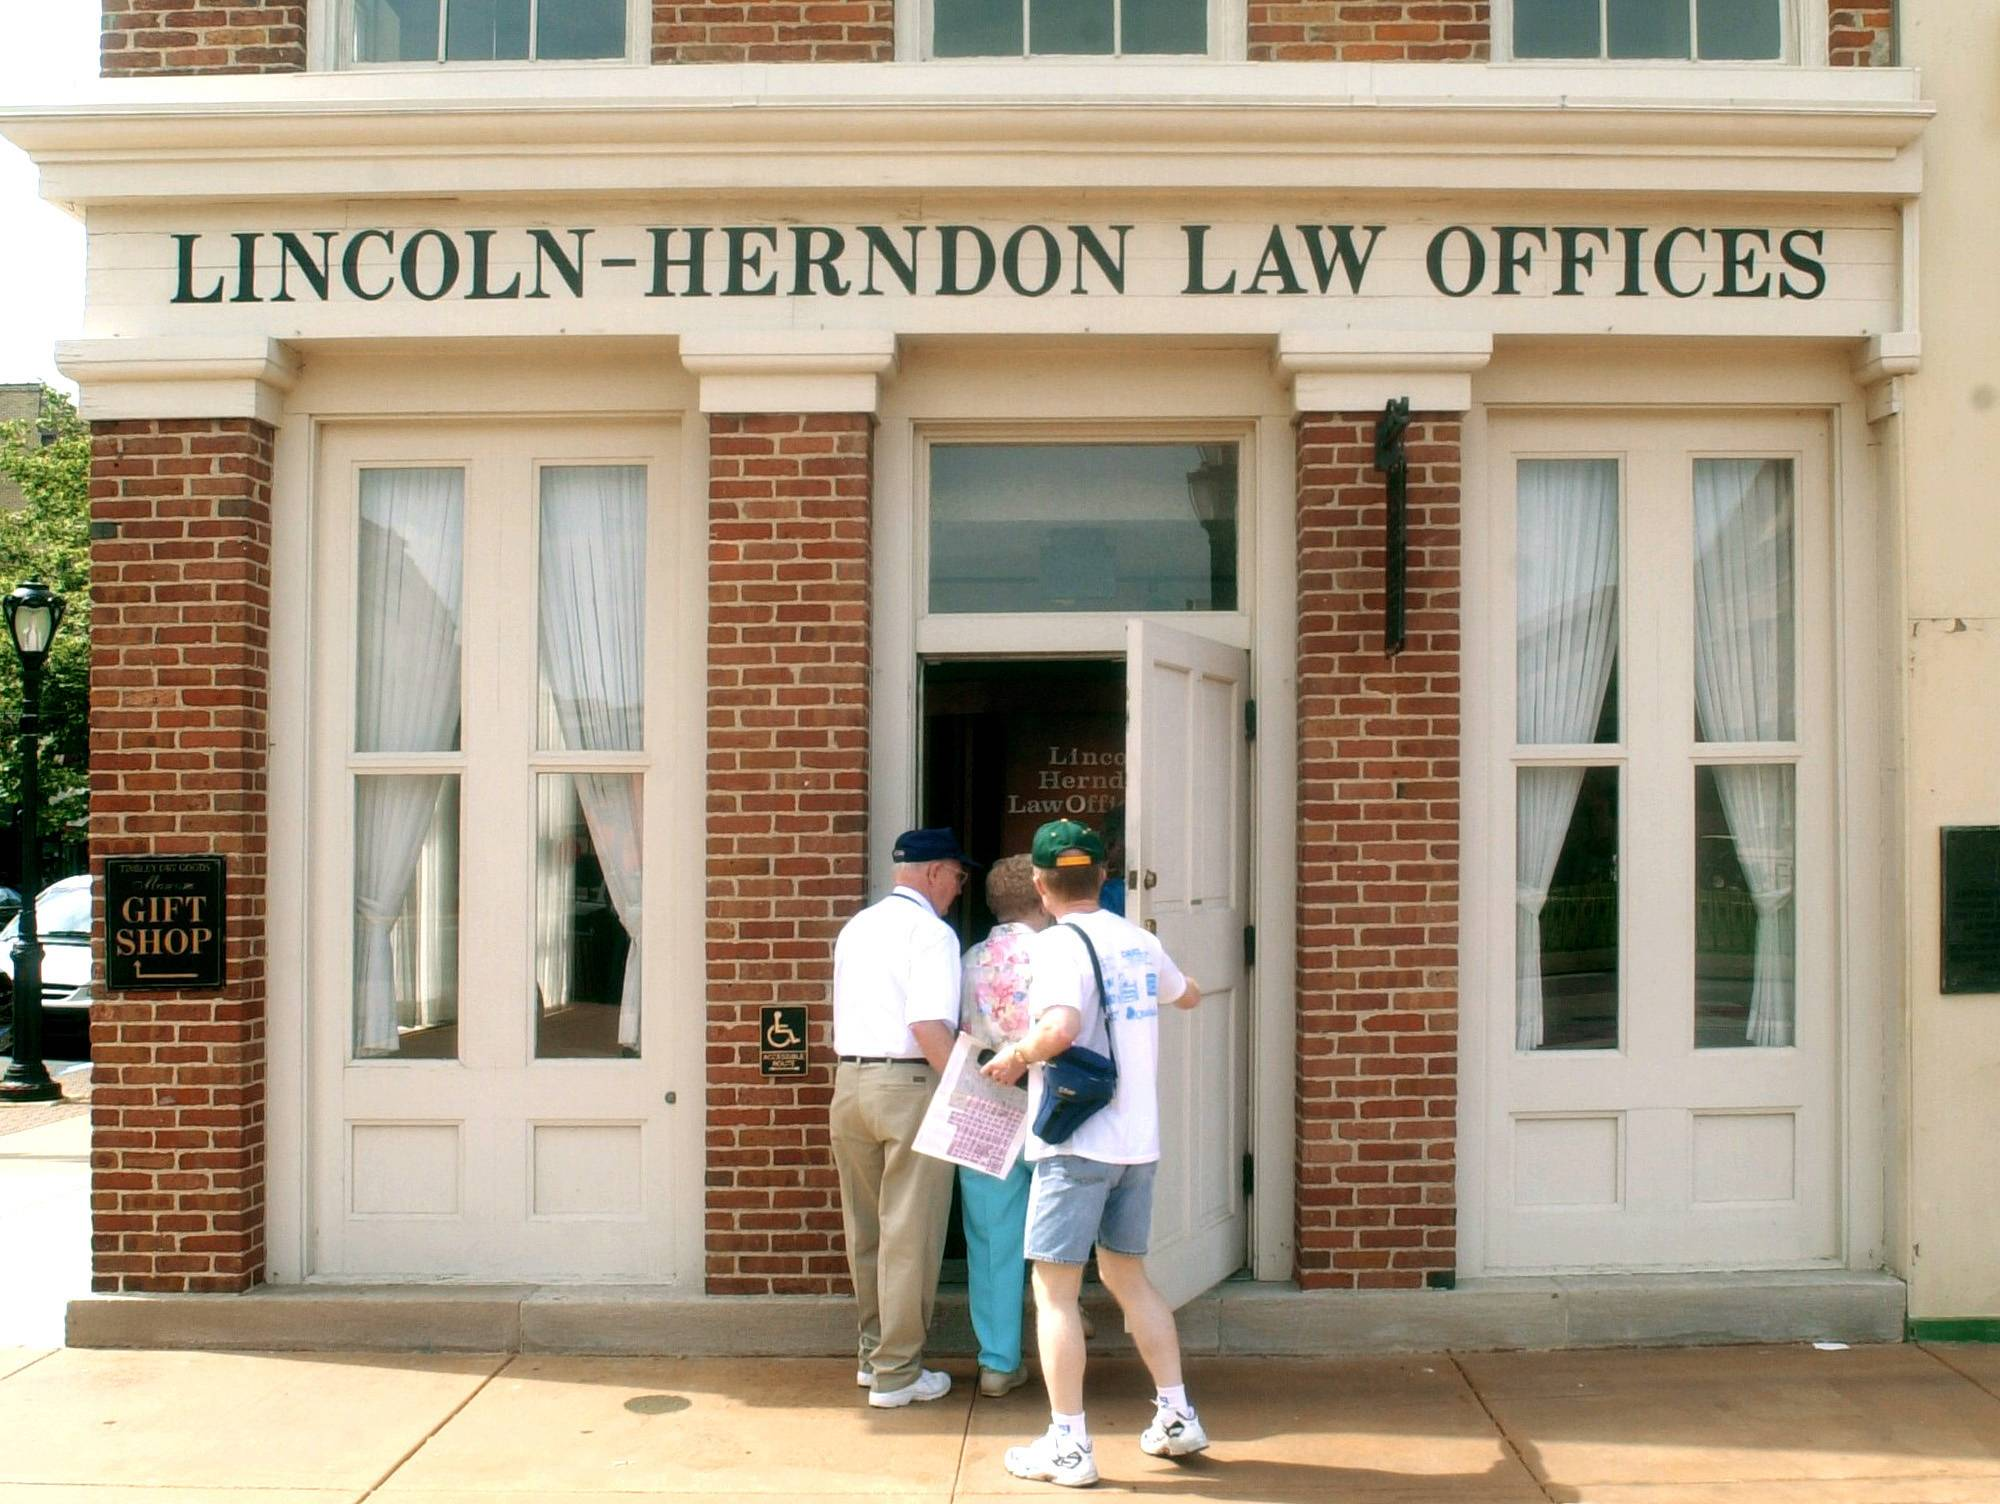 Tourists enter the Lincoln-Herndon Law Offices in Springfield, where Abraham Lincoln practiced law from 1843 to 1852.